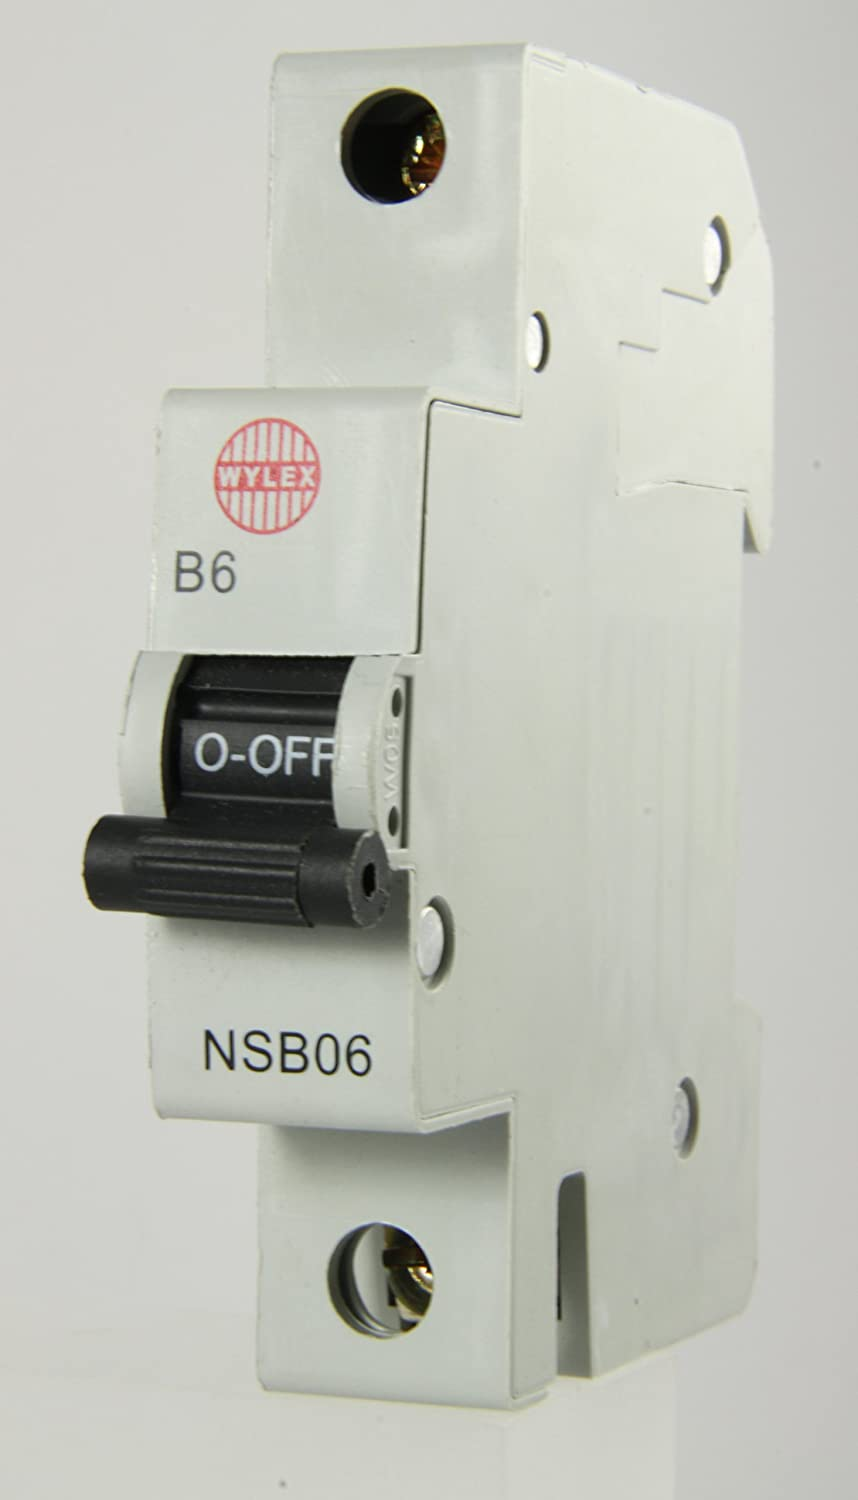 71ag%2BWBX9bL._SL1500_ hager fuse box manual efcaviation com hager fuse box problems at fashall.co